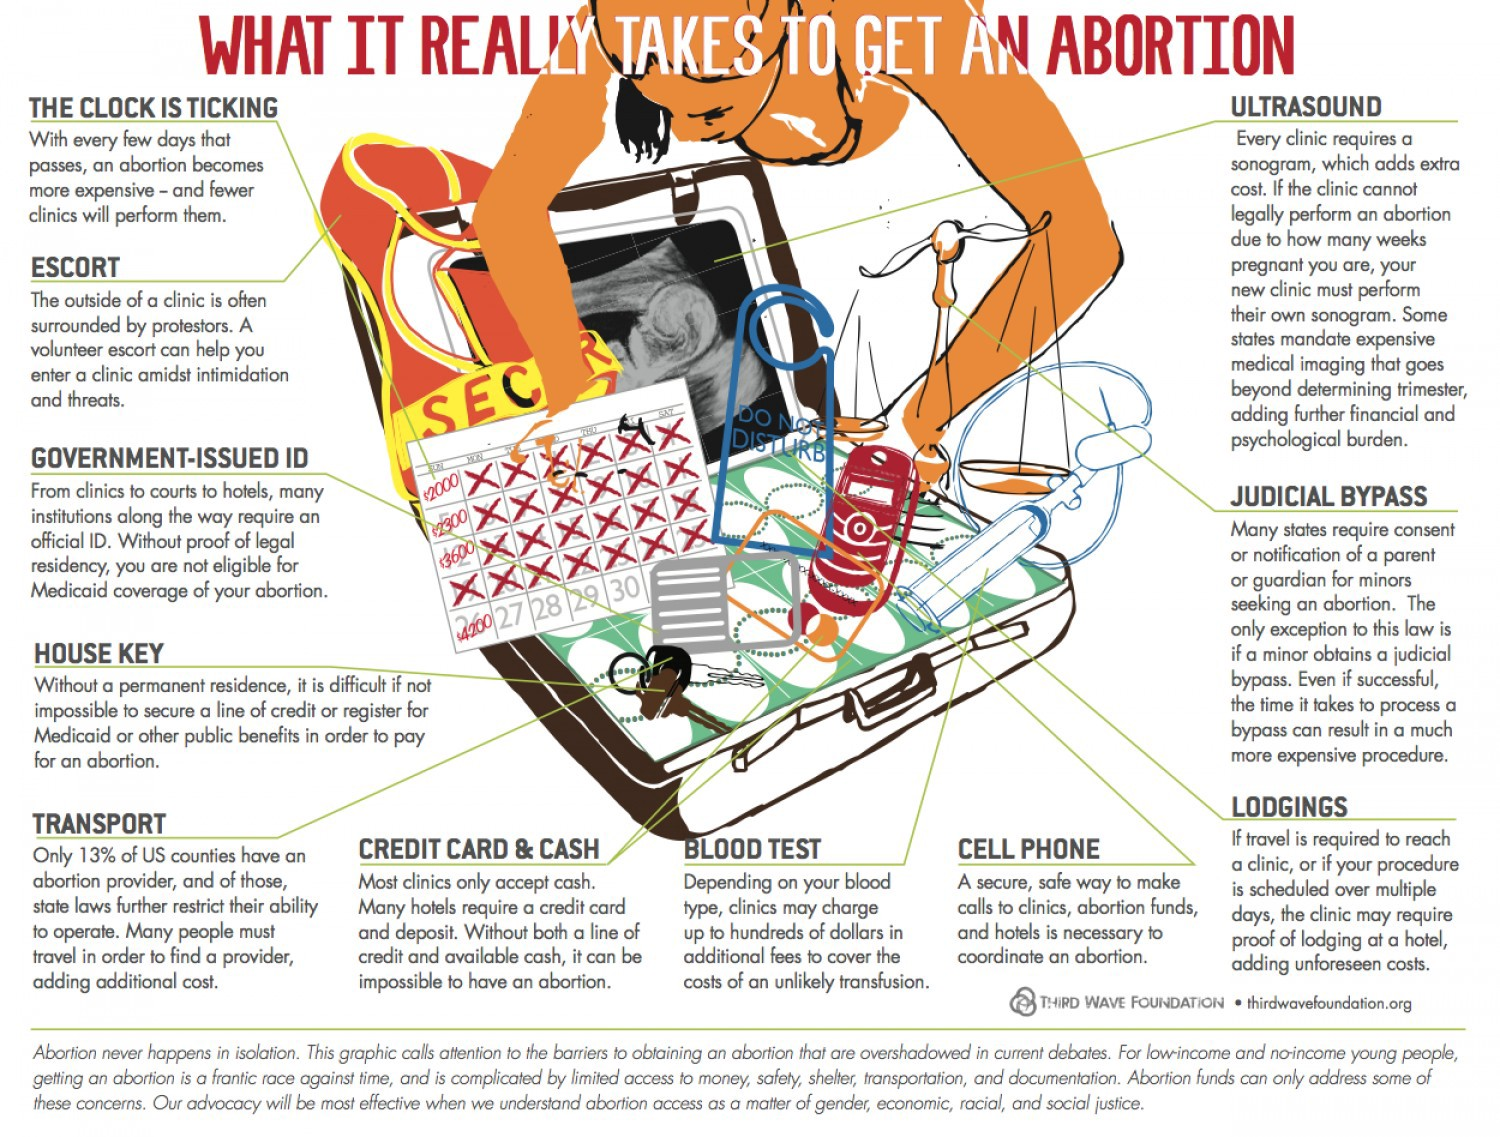 The Cost of Things: Funding an Abortion - The Billfold - Medium